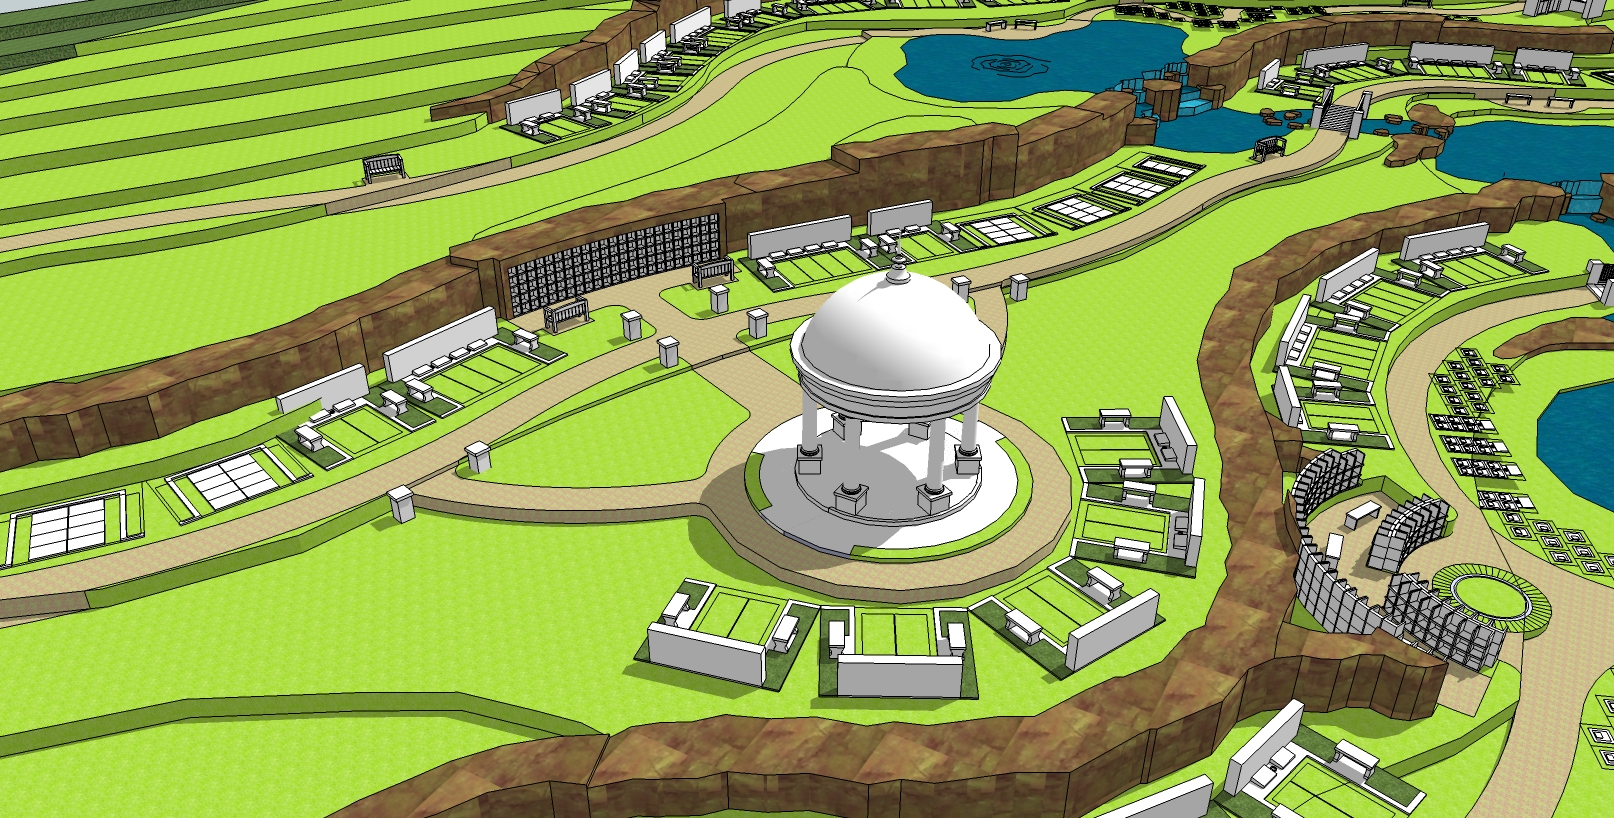 Forest Lawn Cemetery_Site model_3D_10-8-13 - ds6.jpg